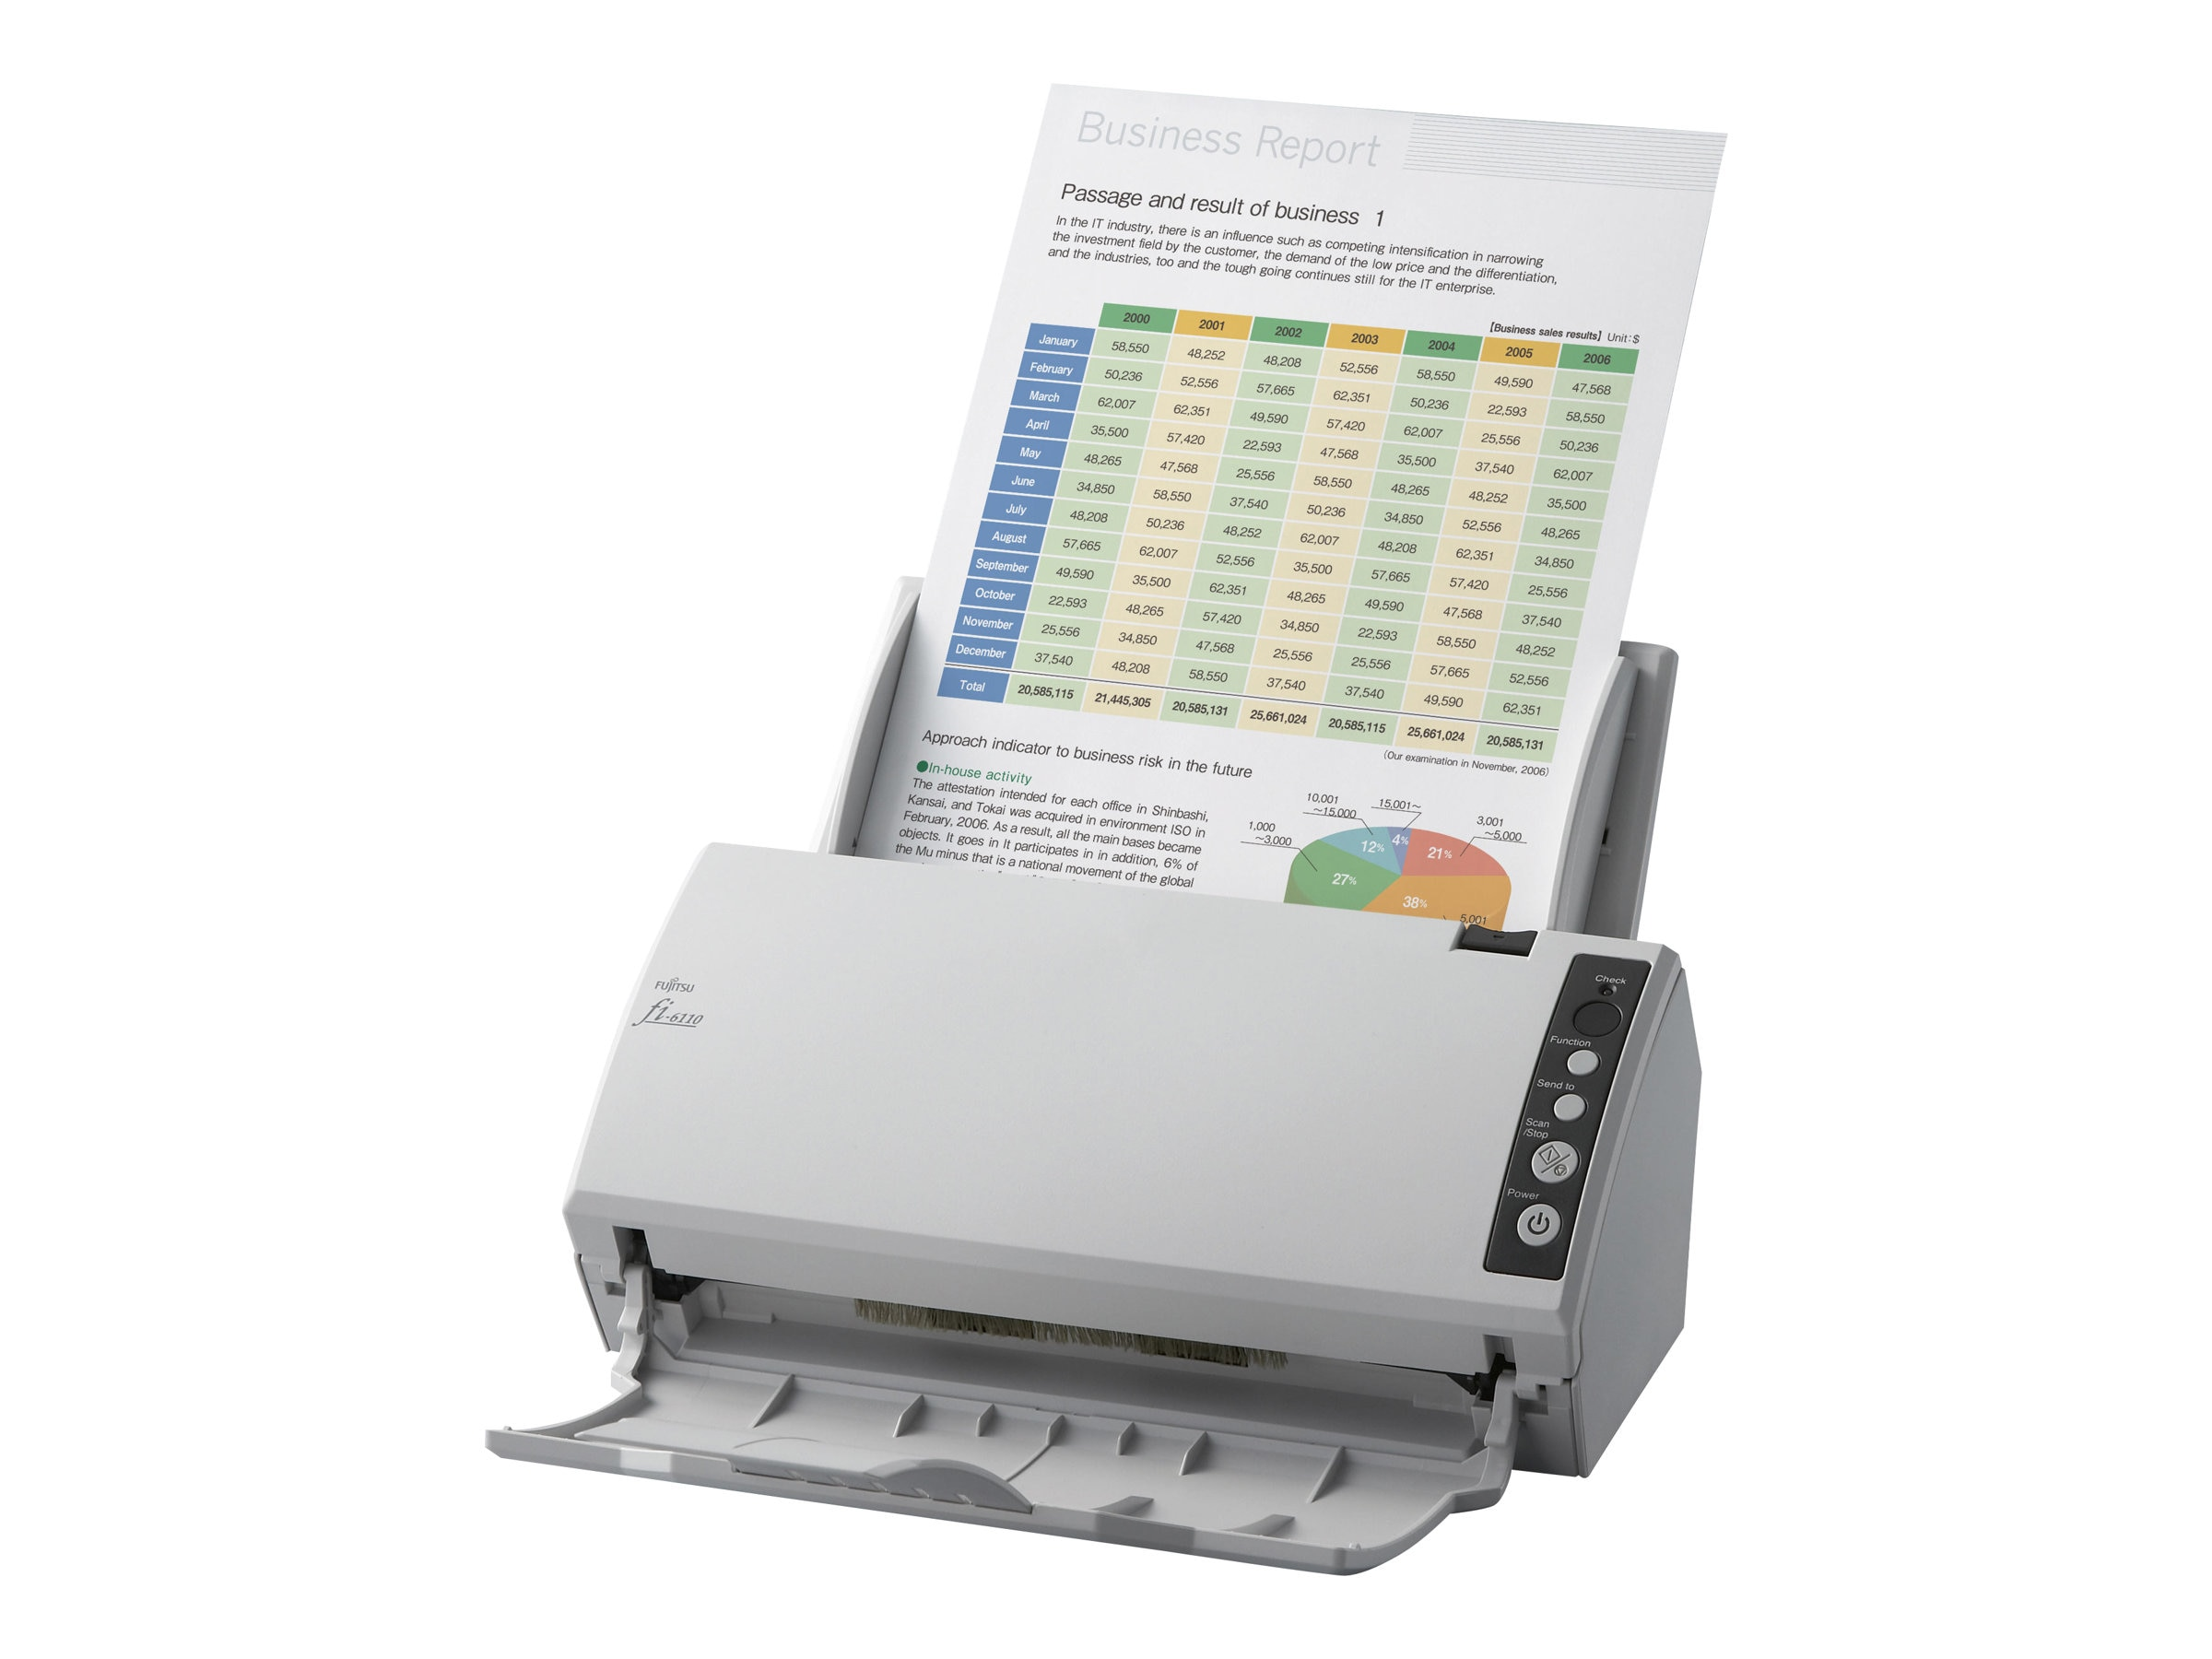 Fujitsu FI-6110 Color Production Sheetfed Scanner, PaperStream